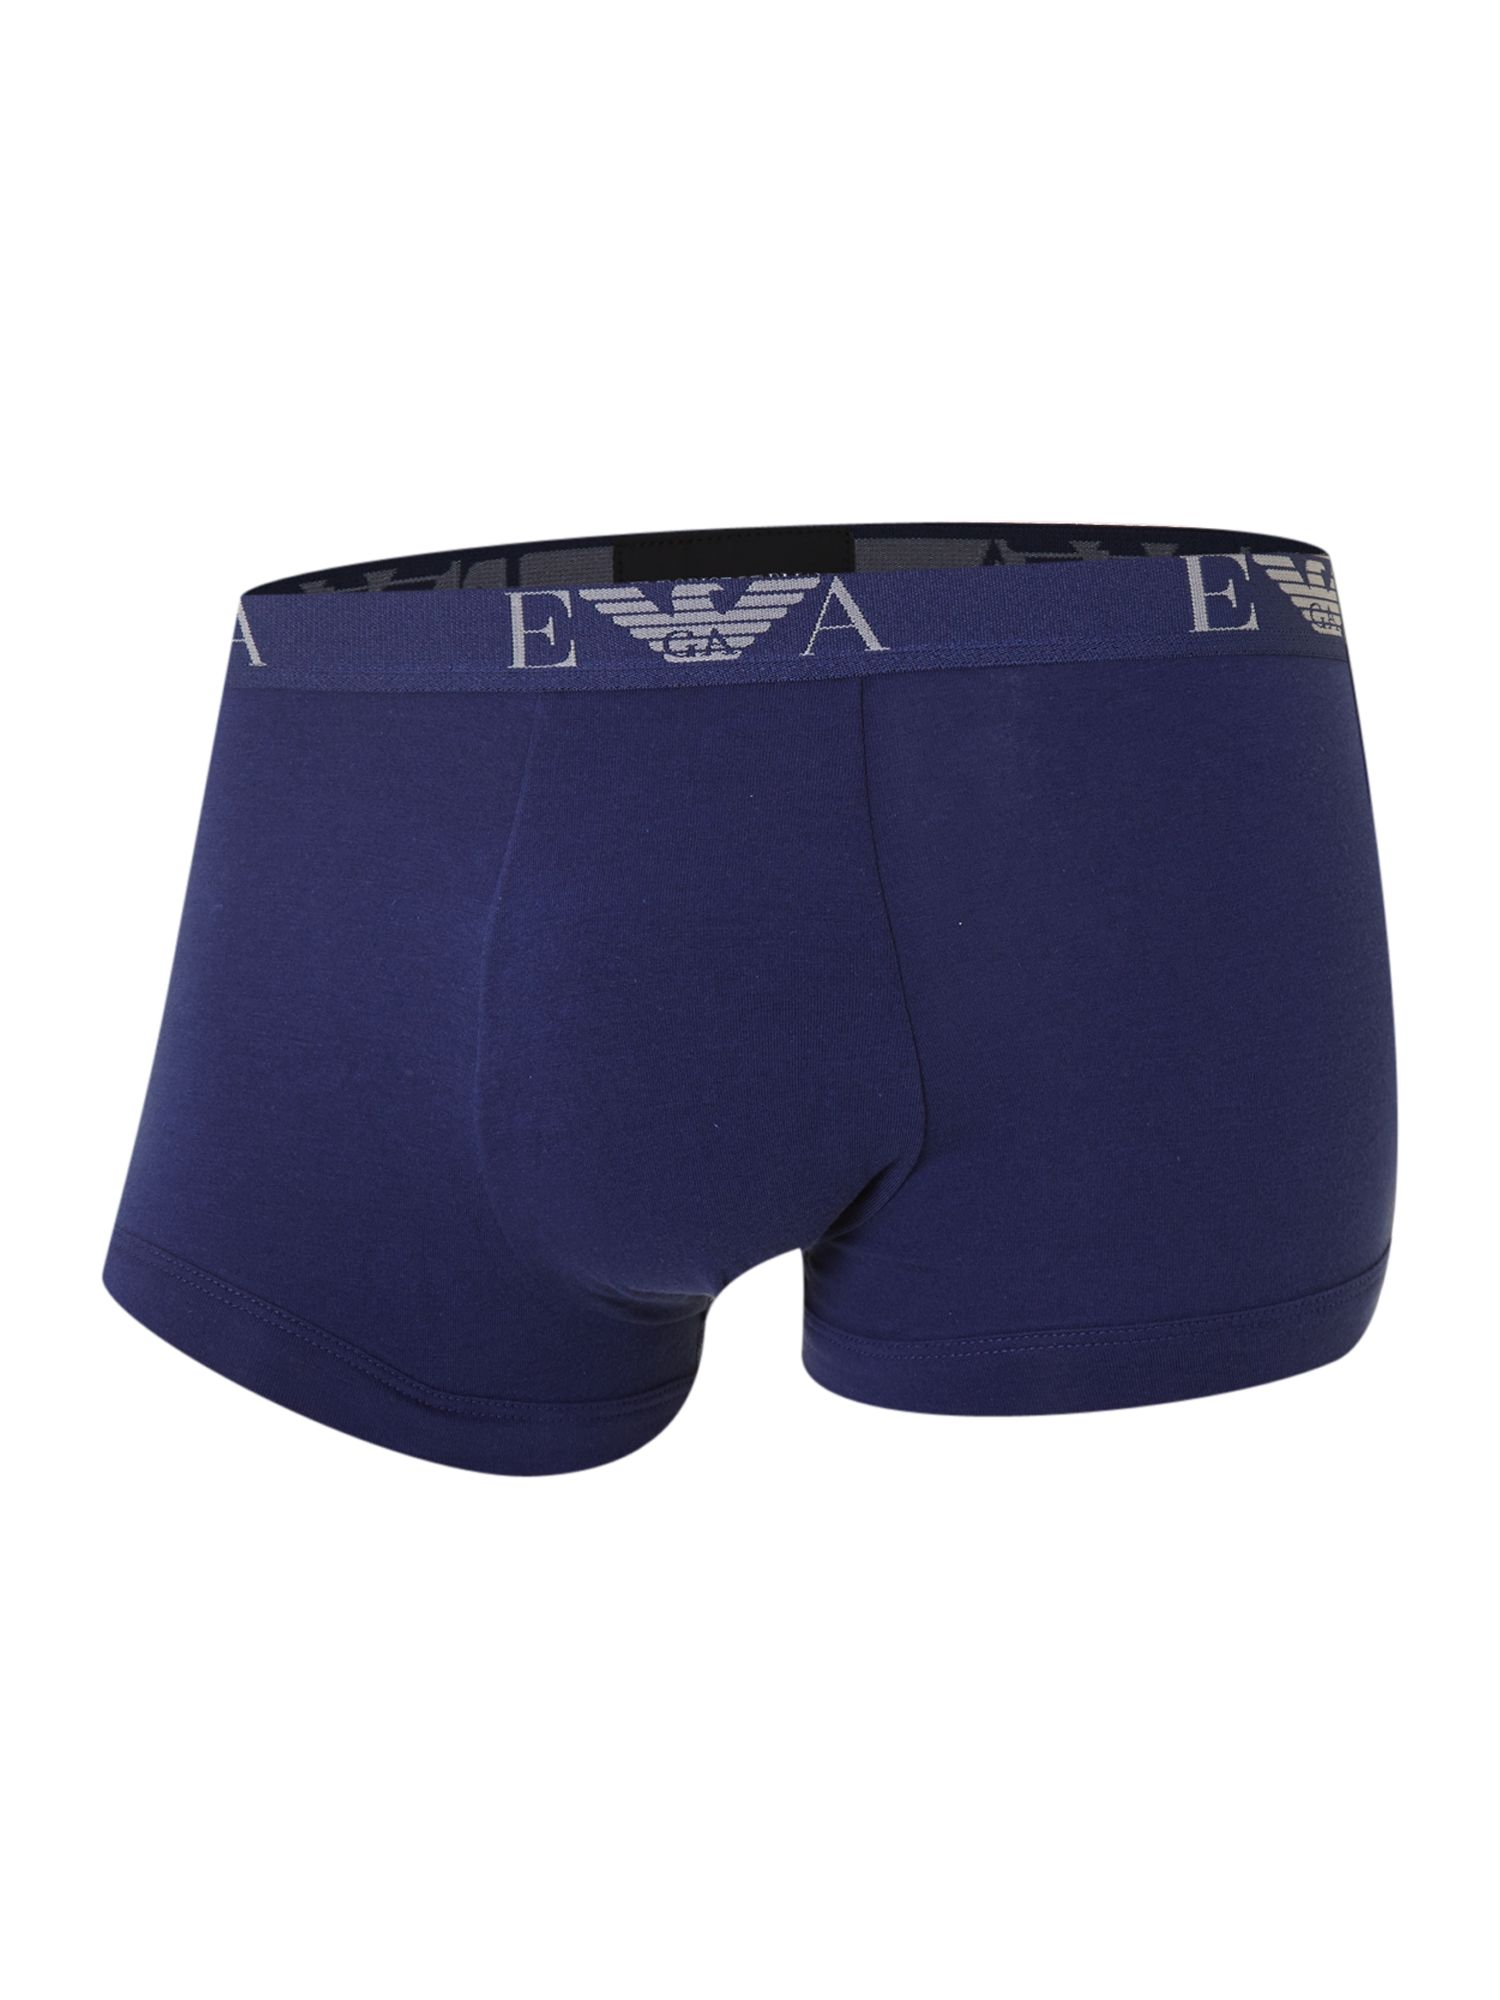 2 pack logo waistband